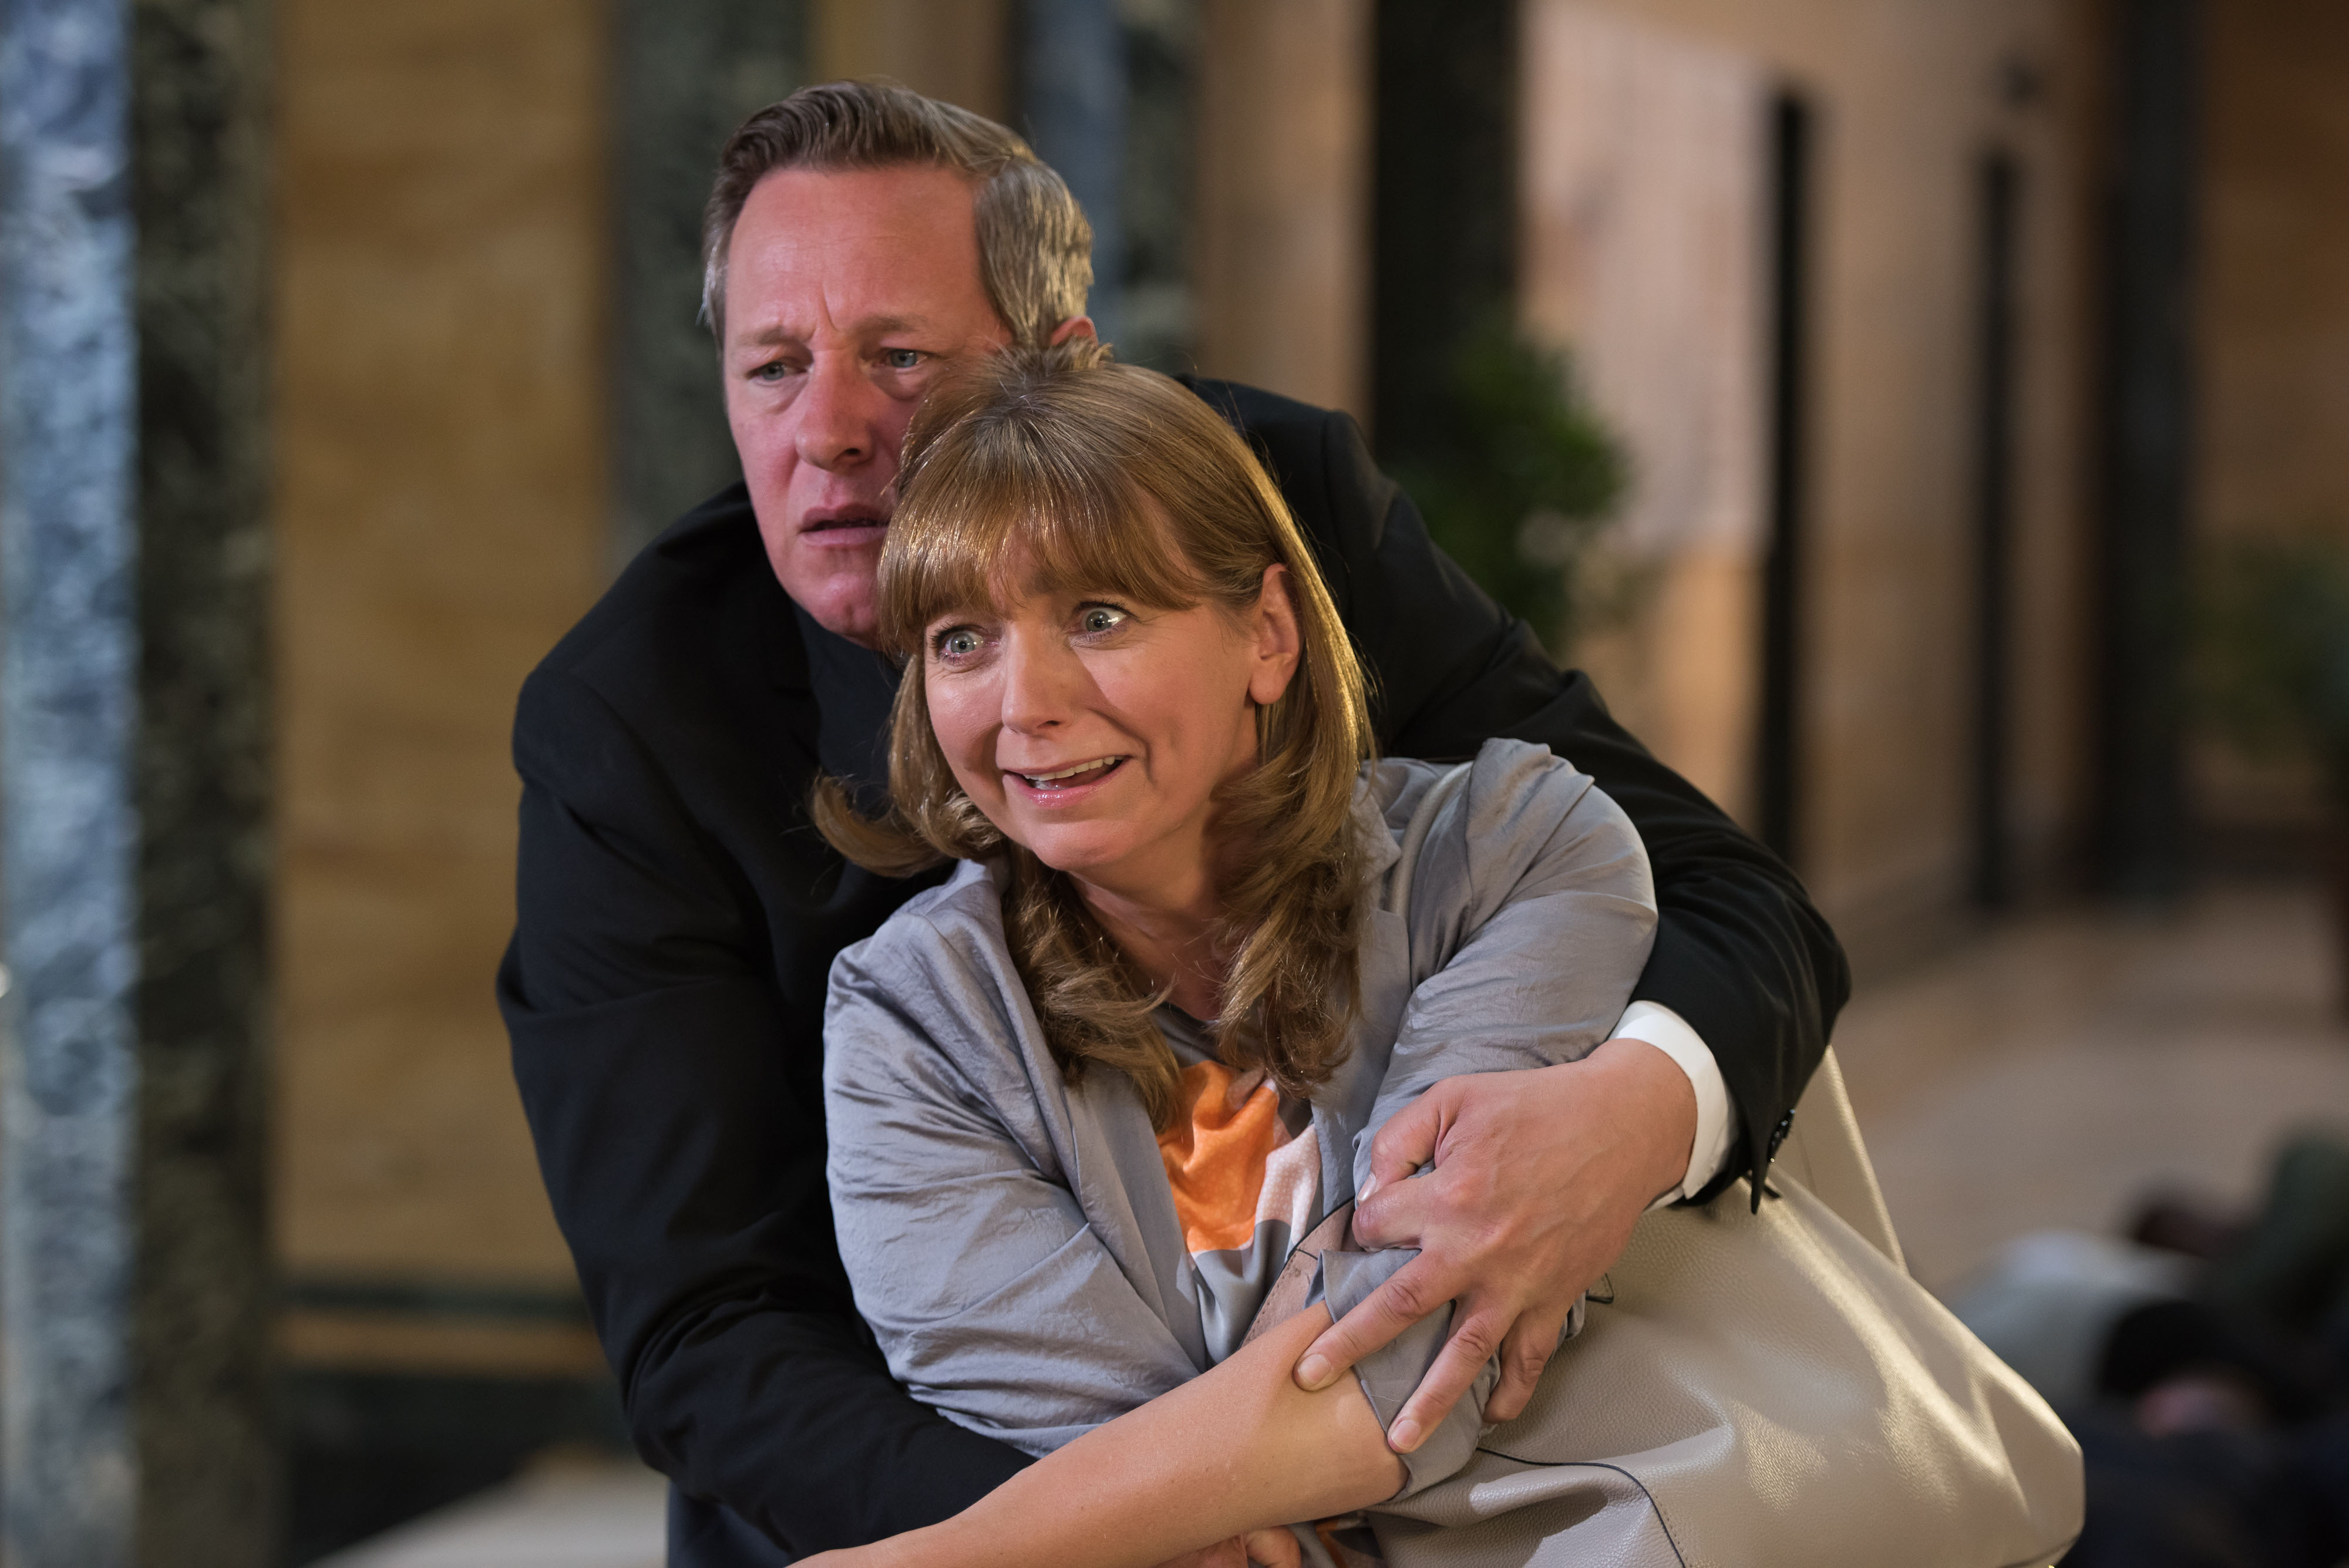 EP 4730 STE AND KATHY 12